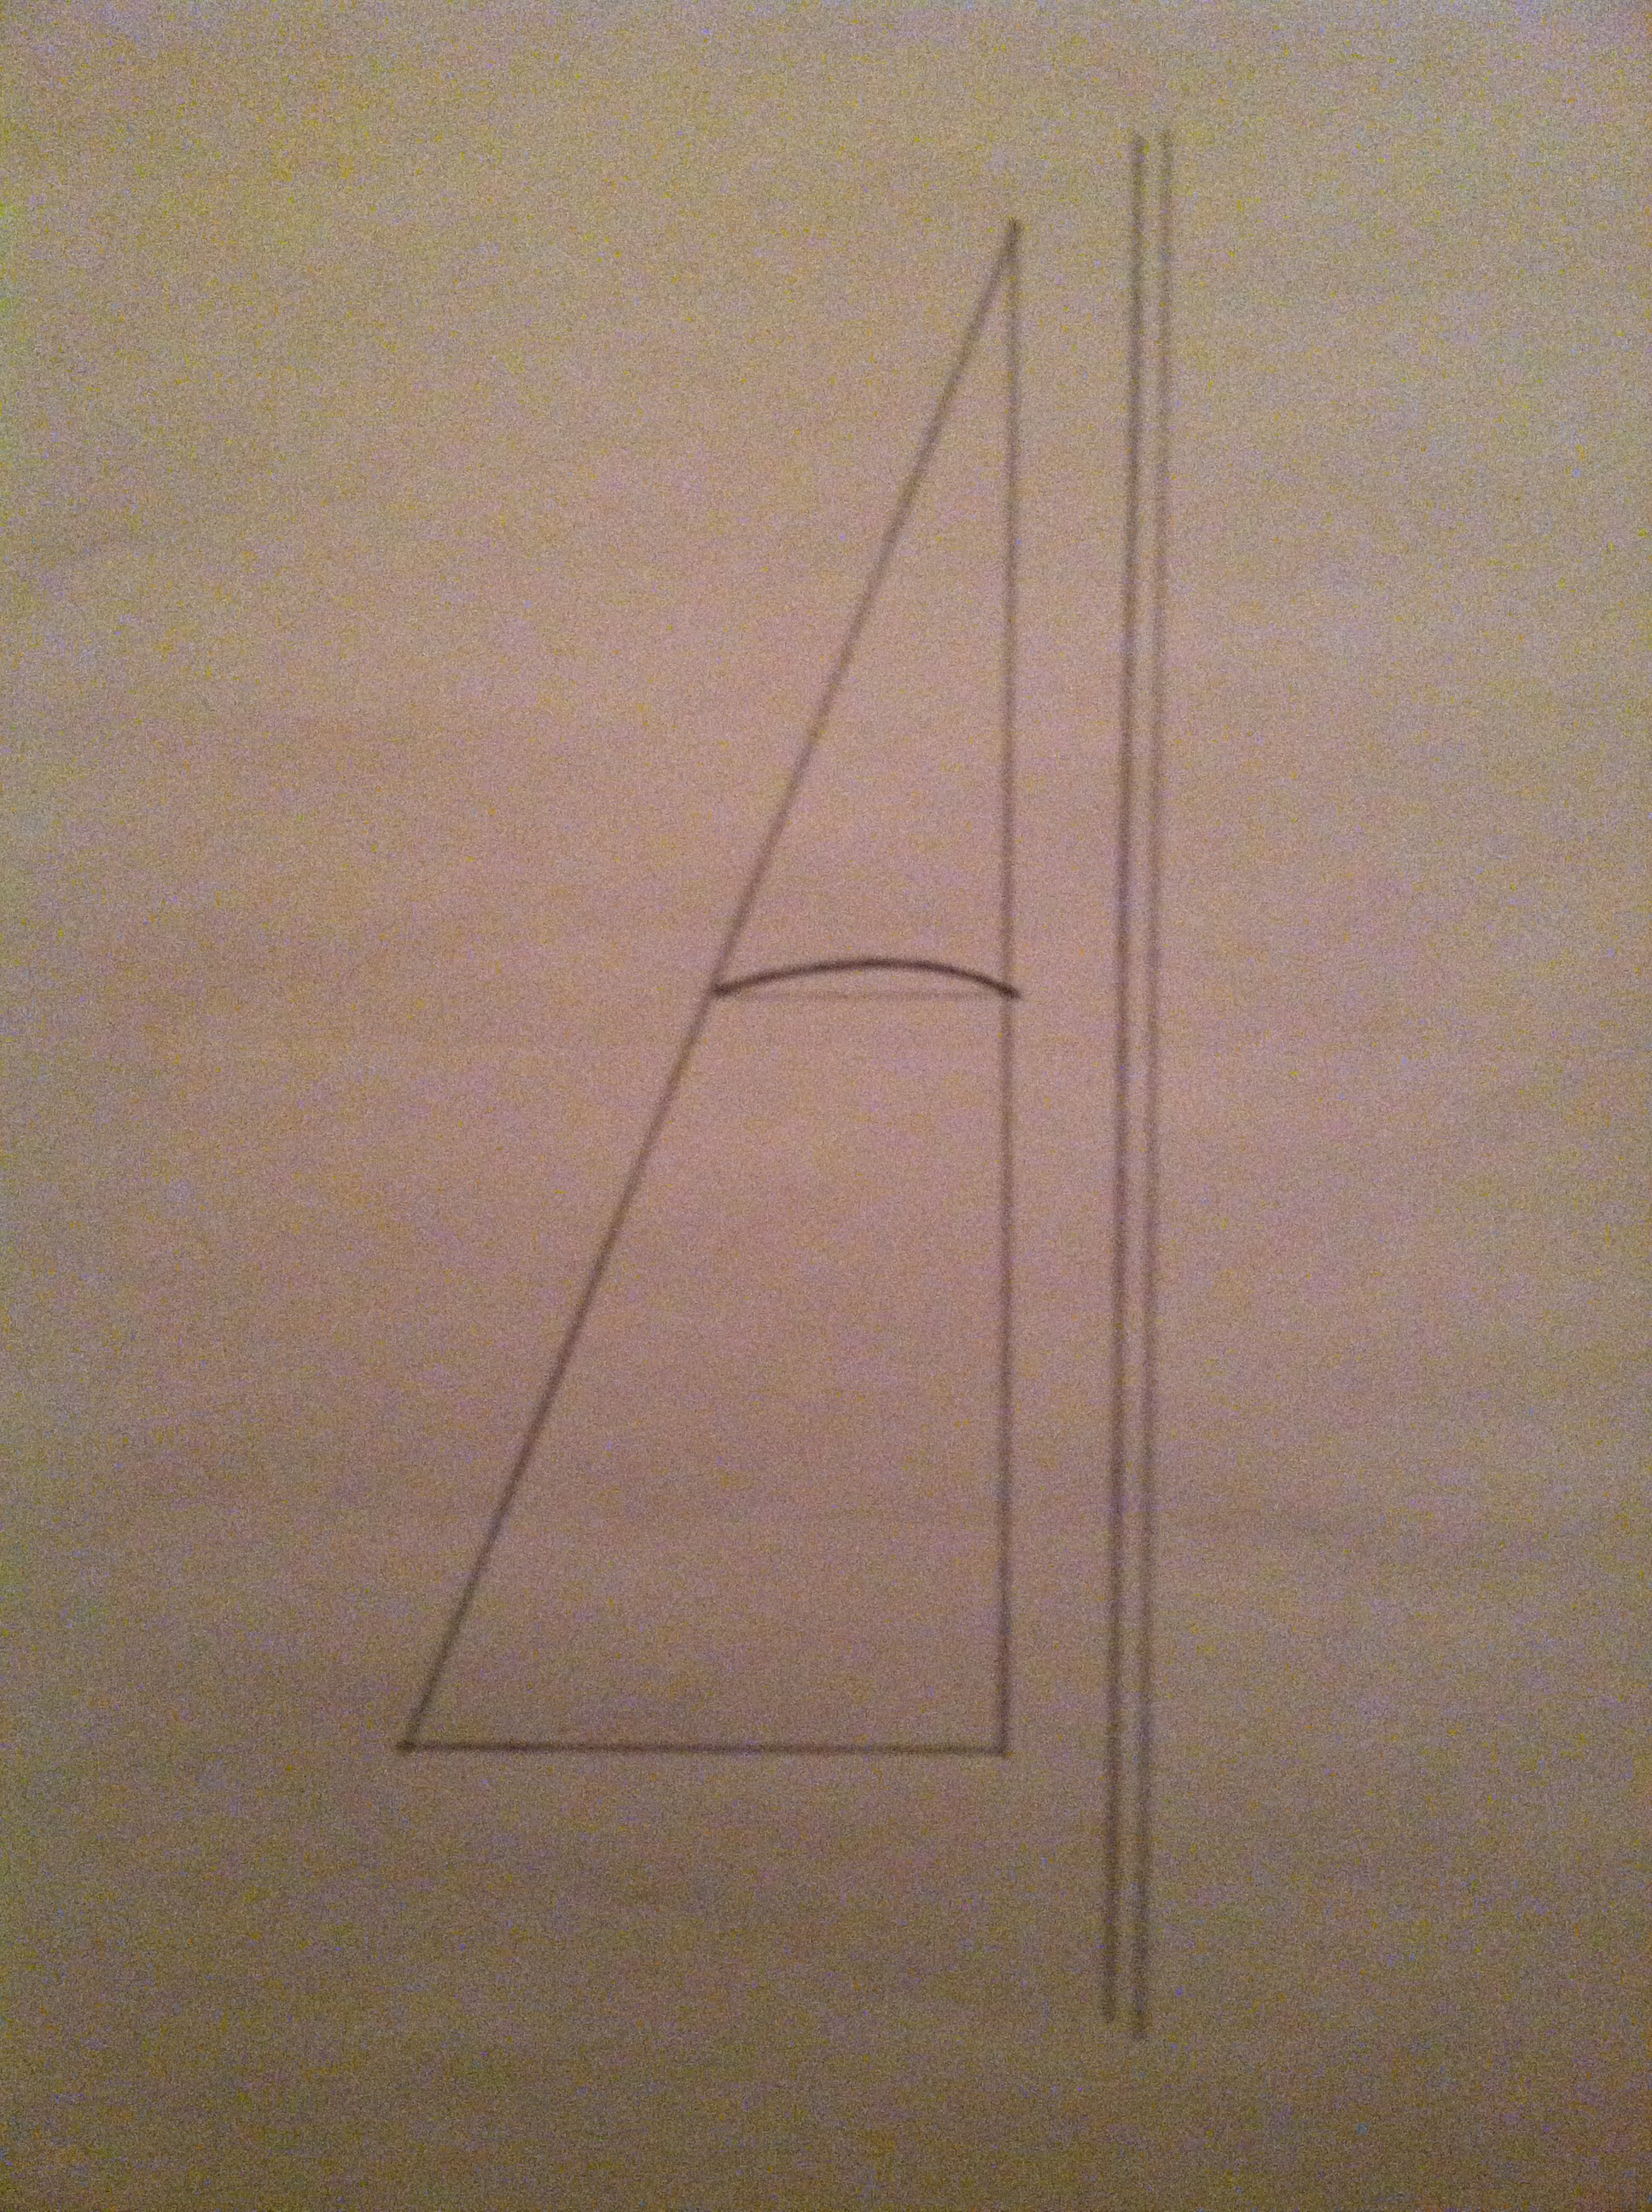 Sketch of a mainsail set on a straight mast